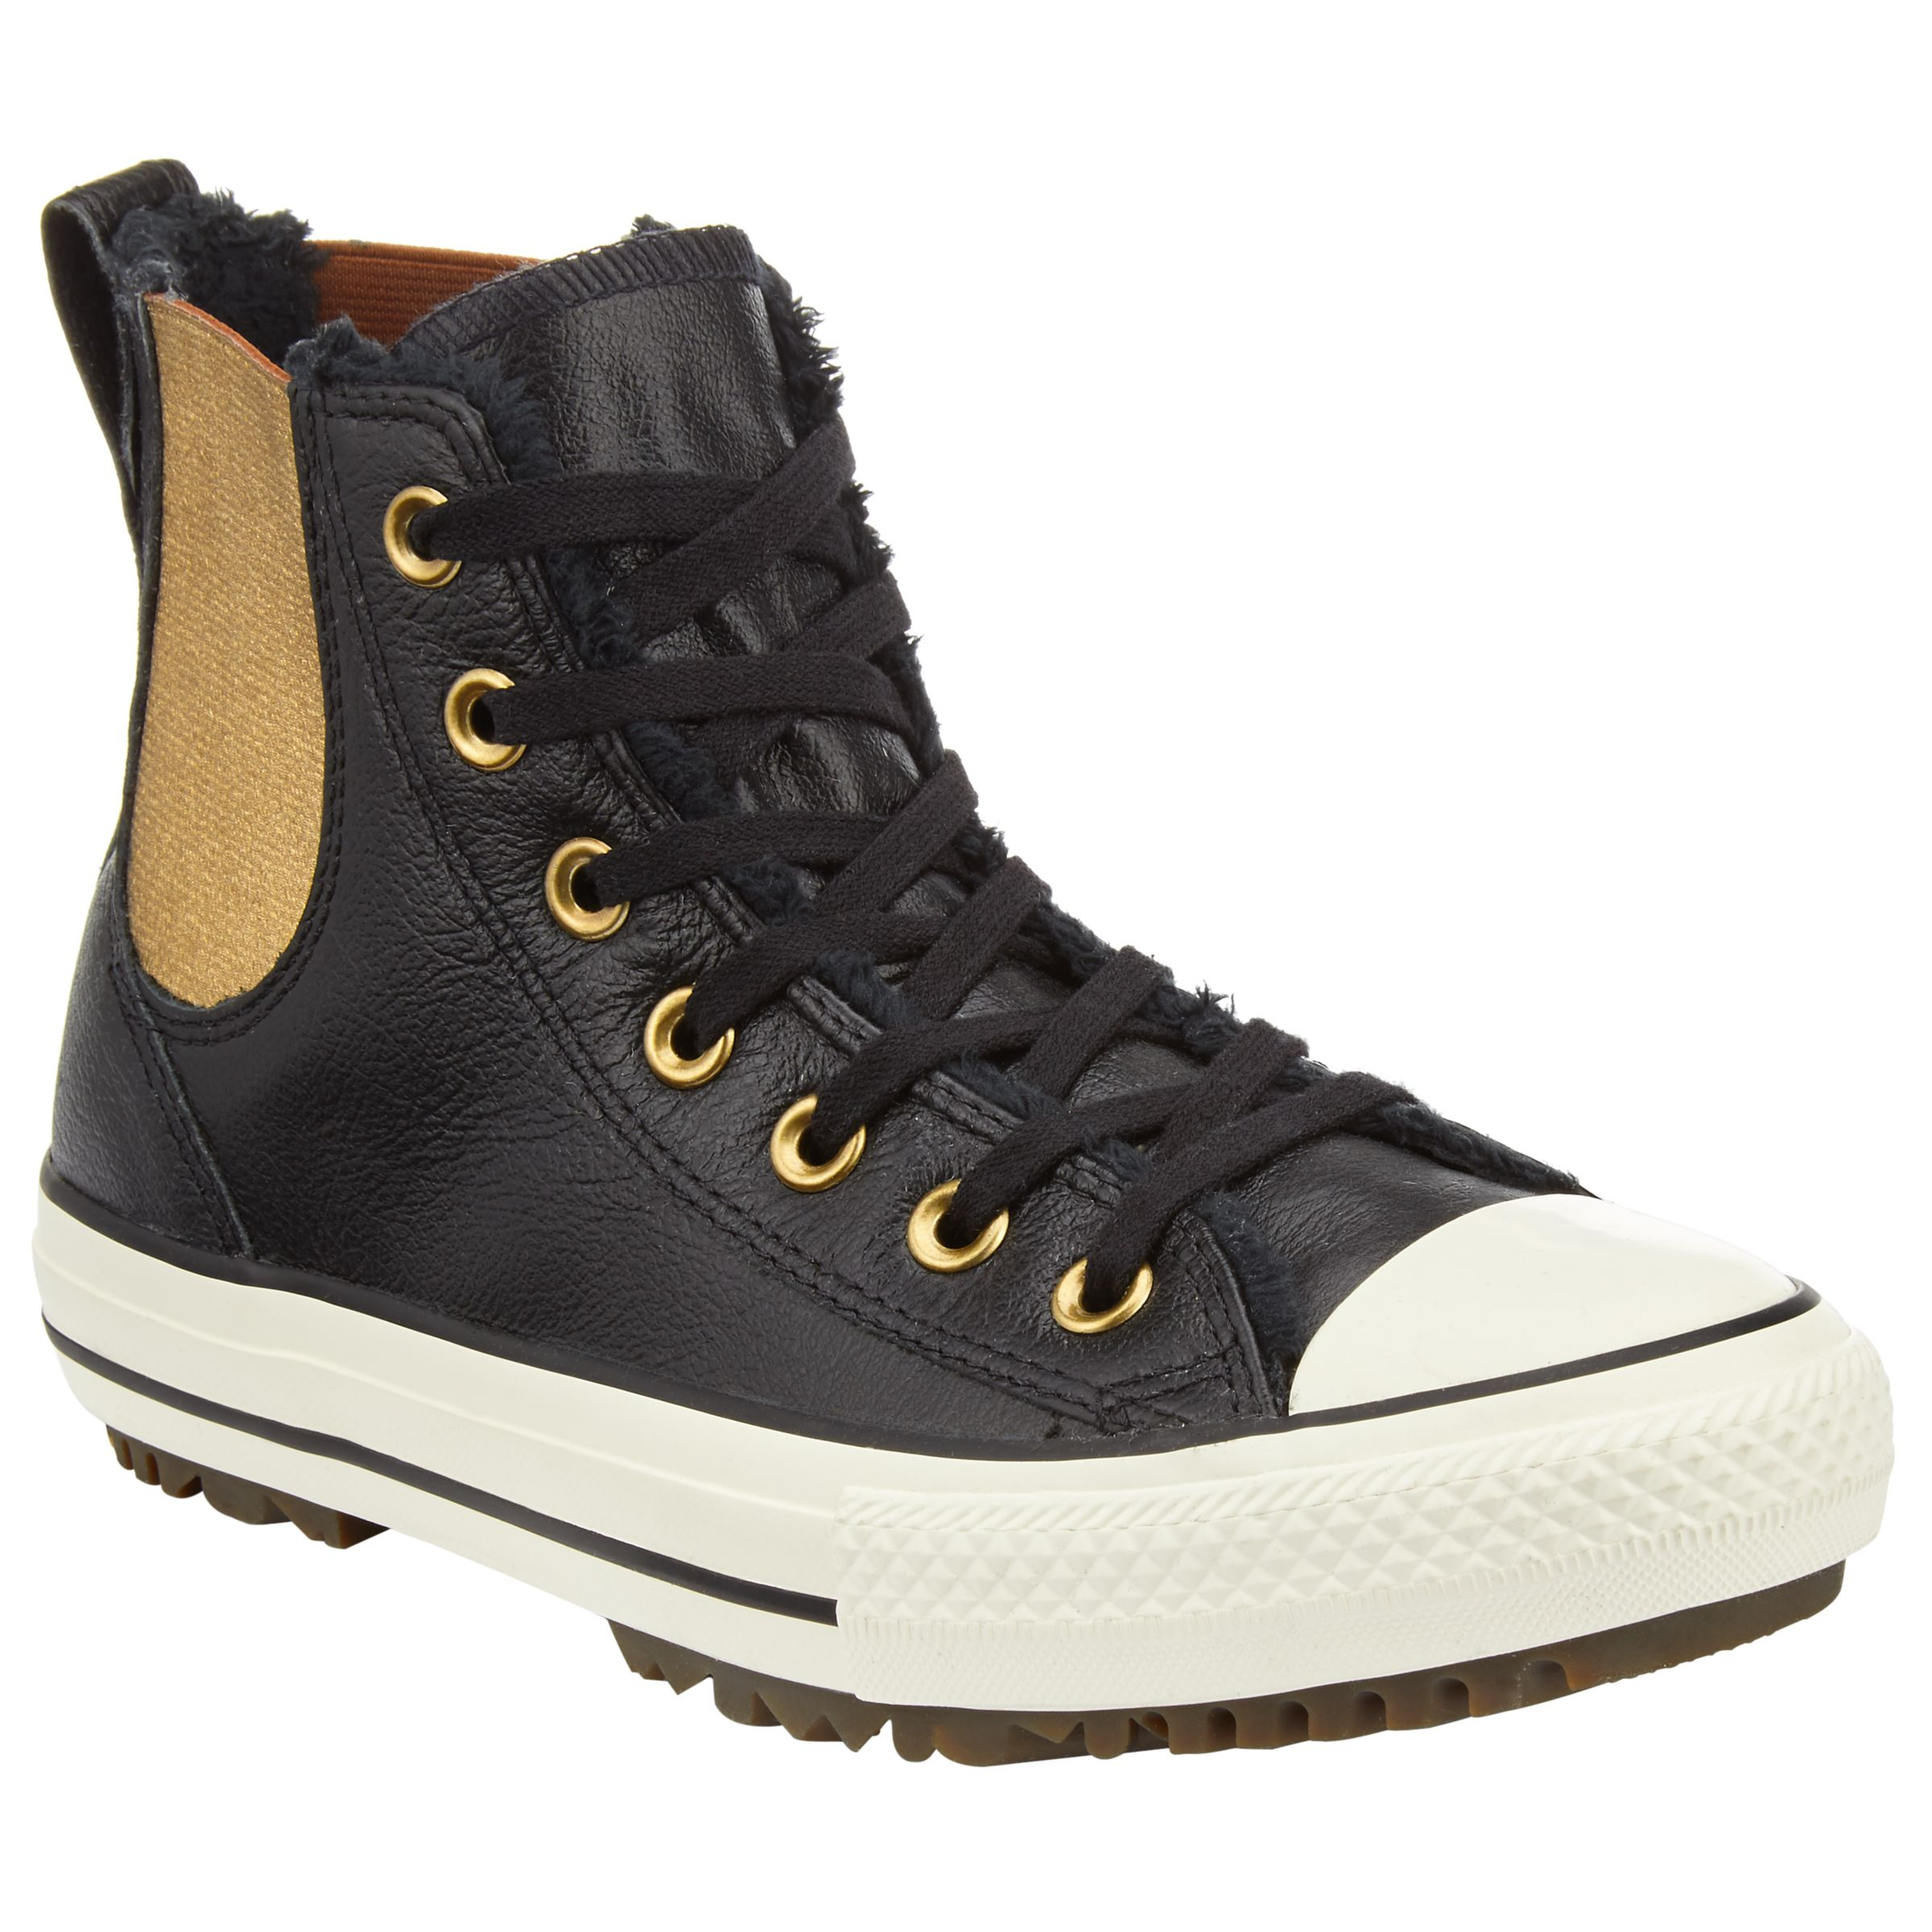 eab35be6af8f86 Converse Chuck Taylor All Star Chelsea Boot Hi Top Trainers